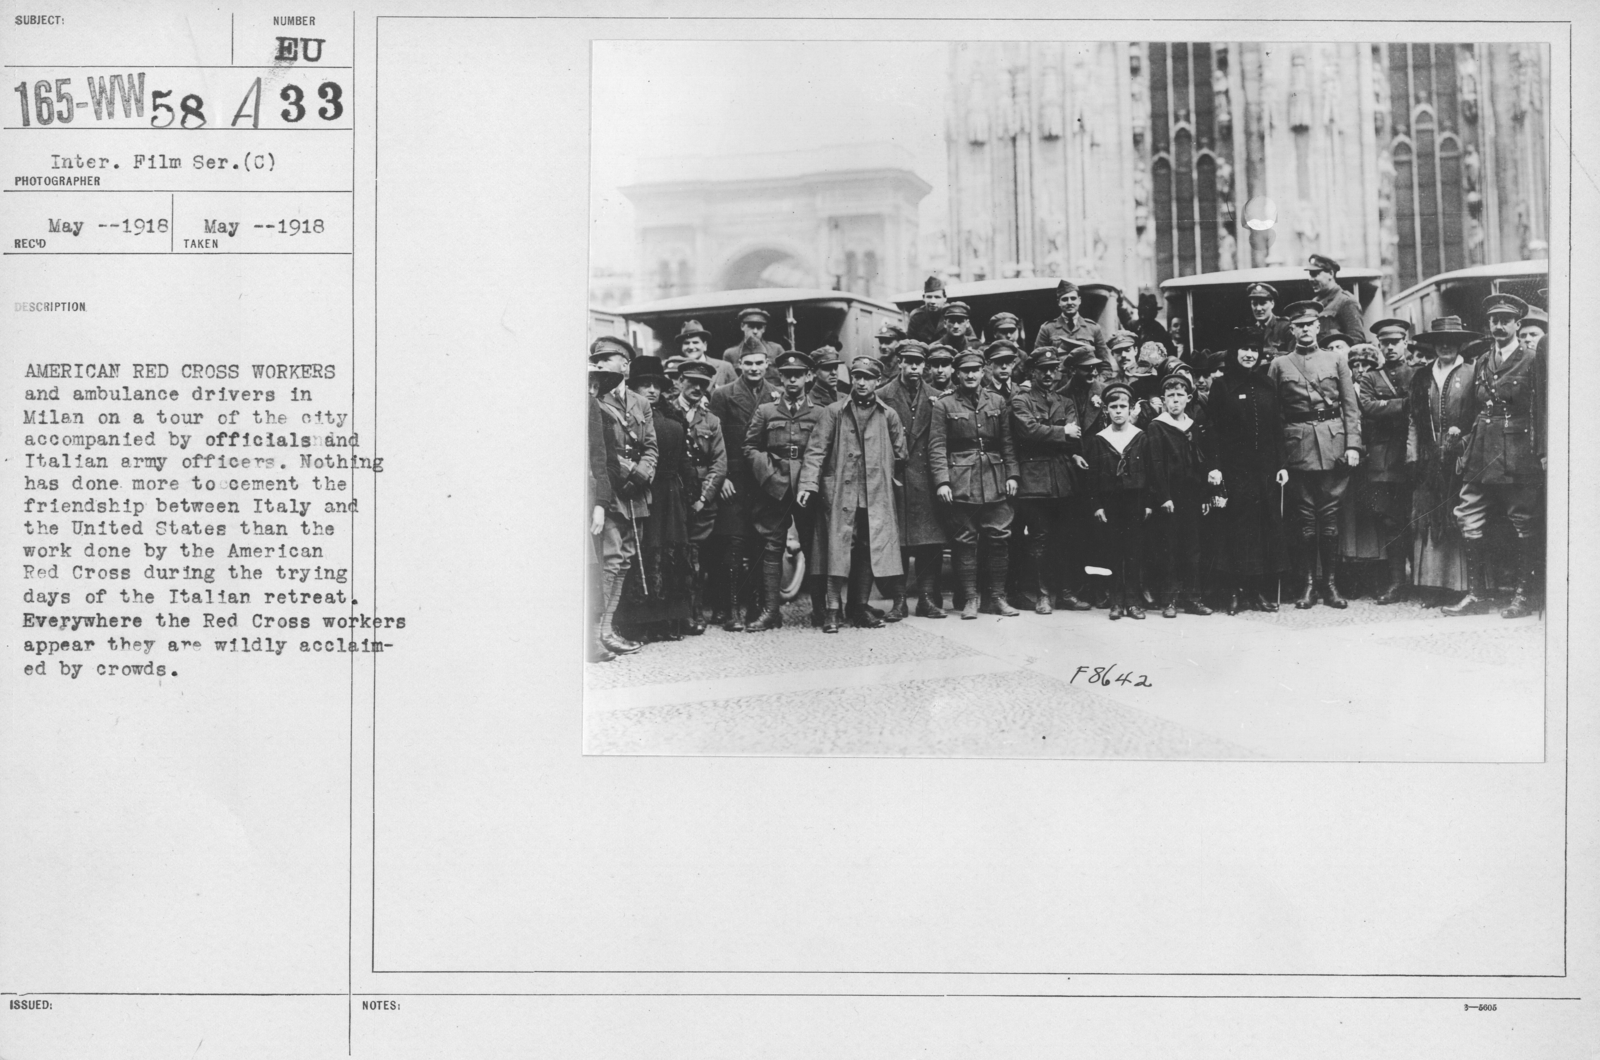 American Red Cross - Groups - American Red Cross workers and ambulance drivers in Milan on a tour of the city accomplanied by officials and Italian army officers. Nothing has done more to cement the friendship between Italy and the United States than the work done by the American Red Cross during the trying days of the Italian retreat. Everywhere the Red Cross workers appear they are are wildly acclaimed by crowds